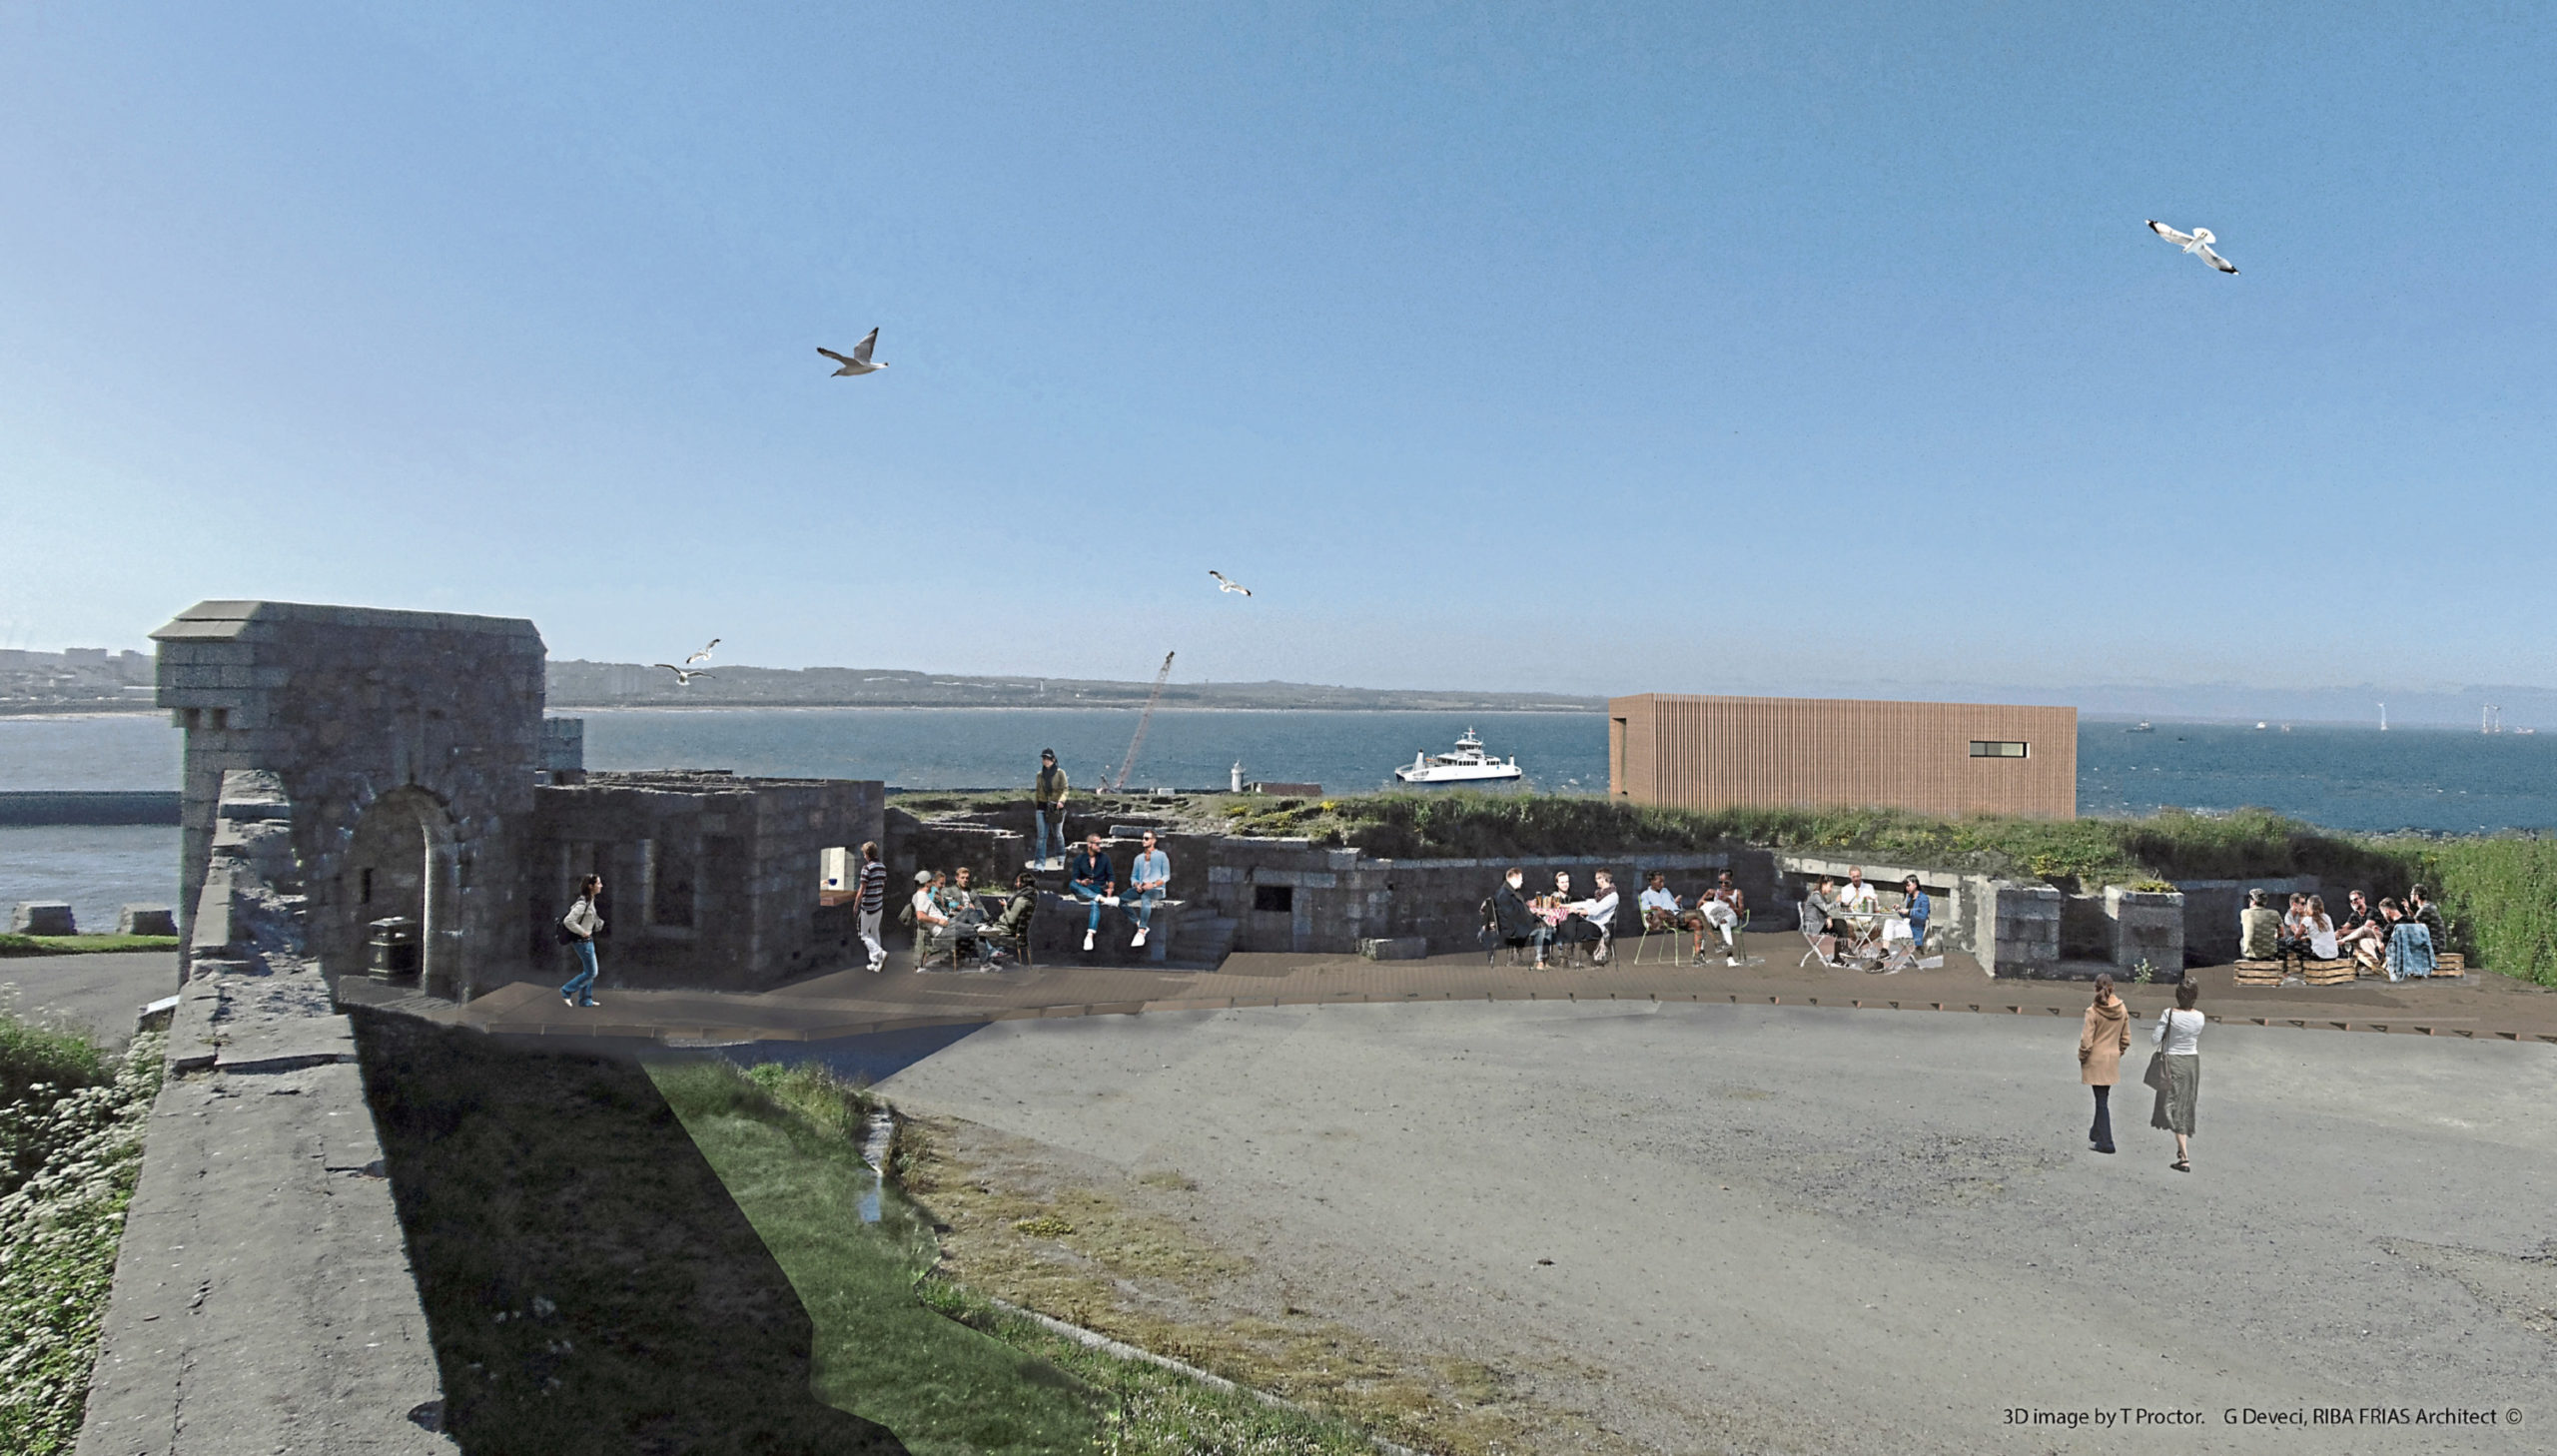 The dolphin-watching project is based at the Torry Battery